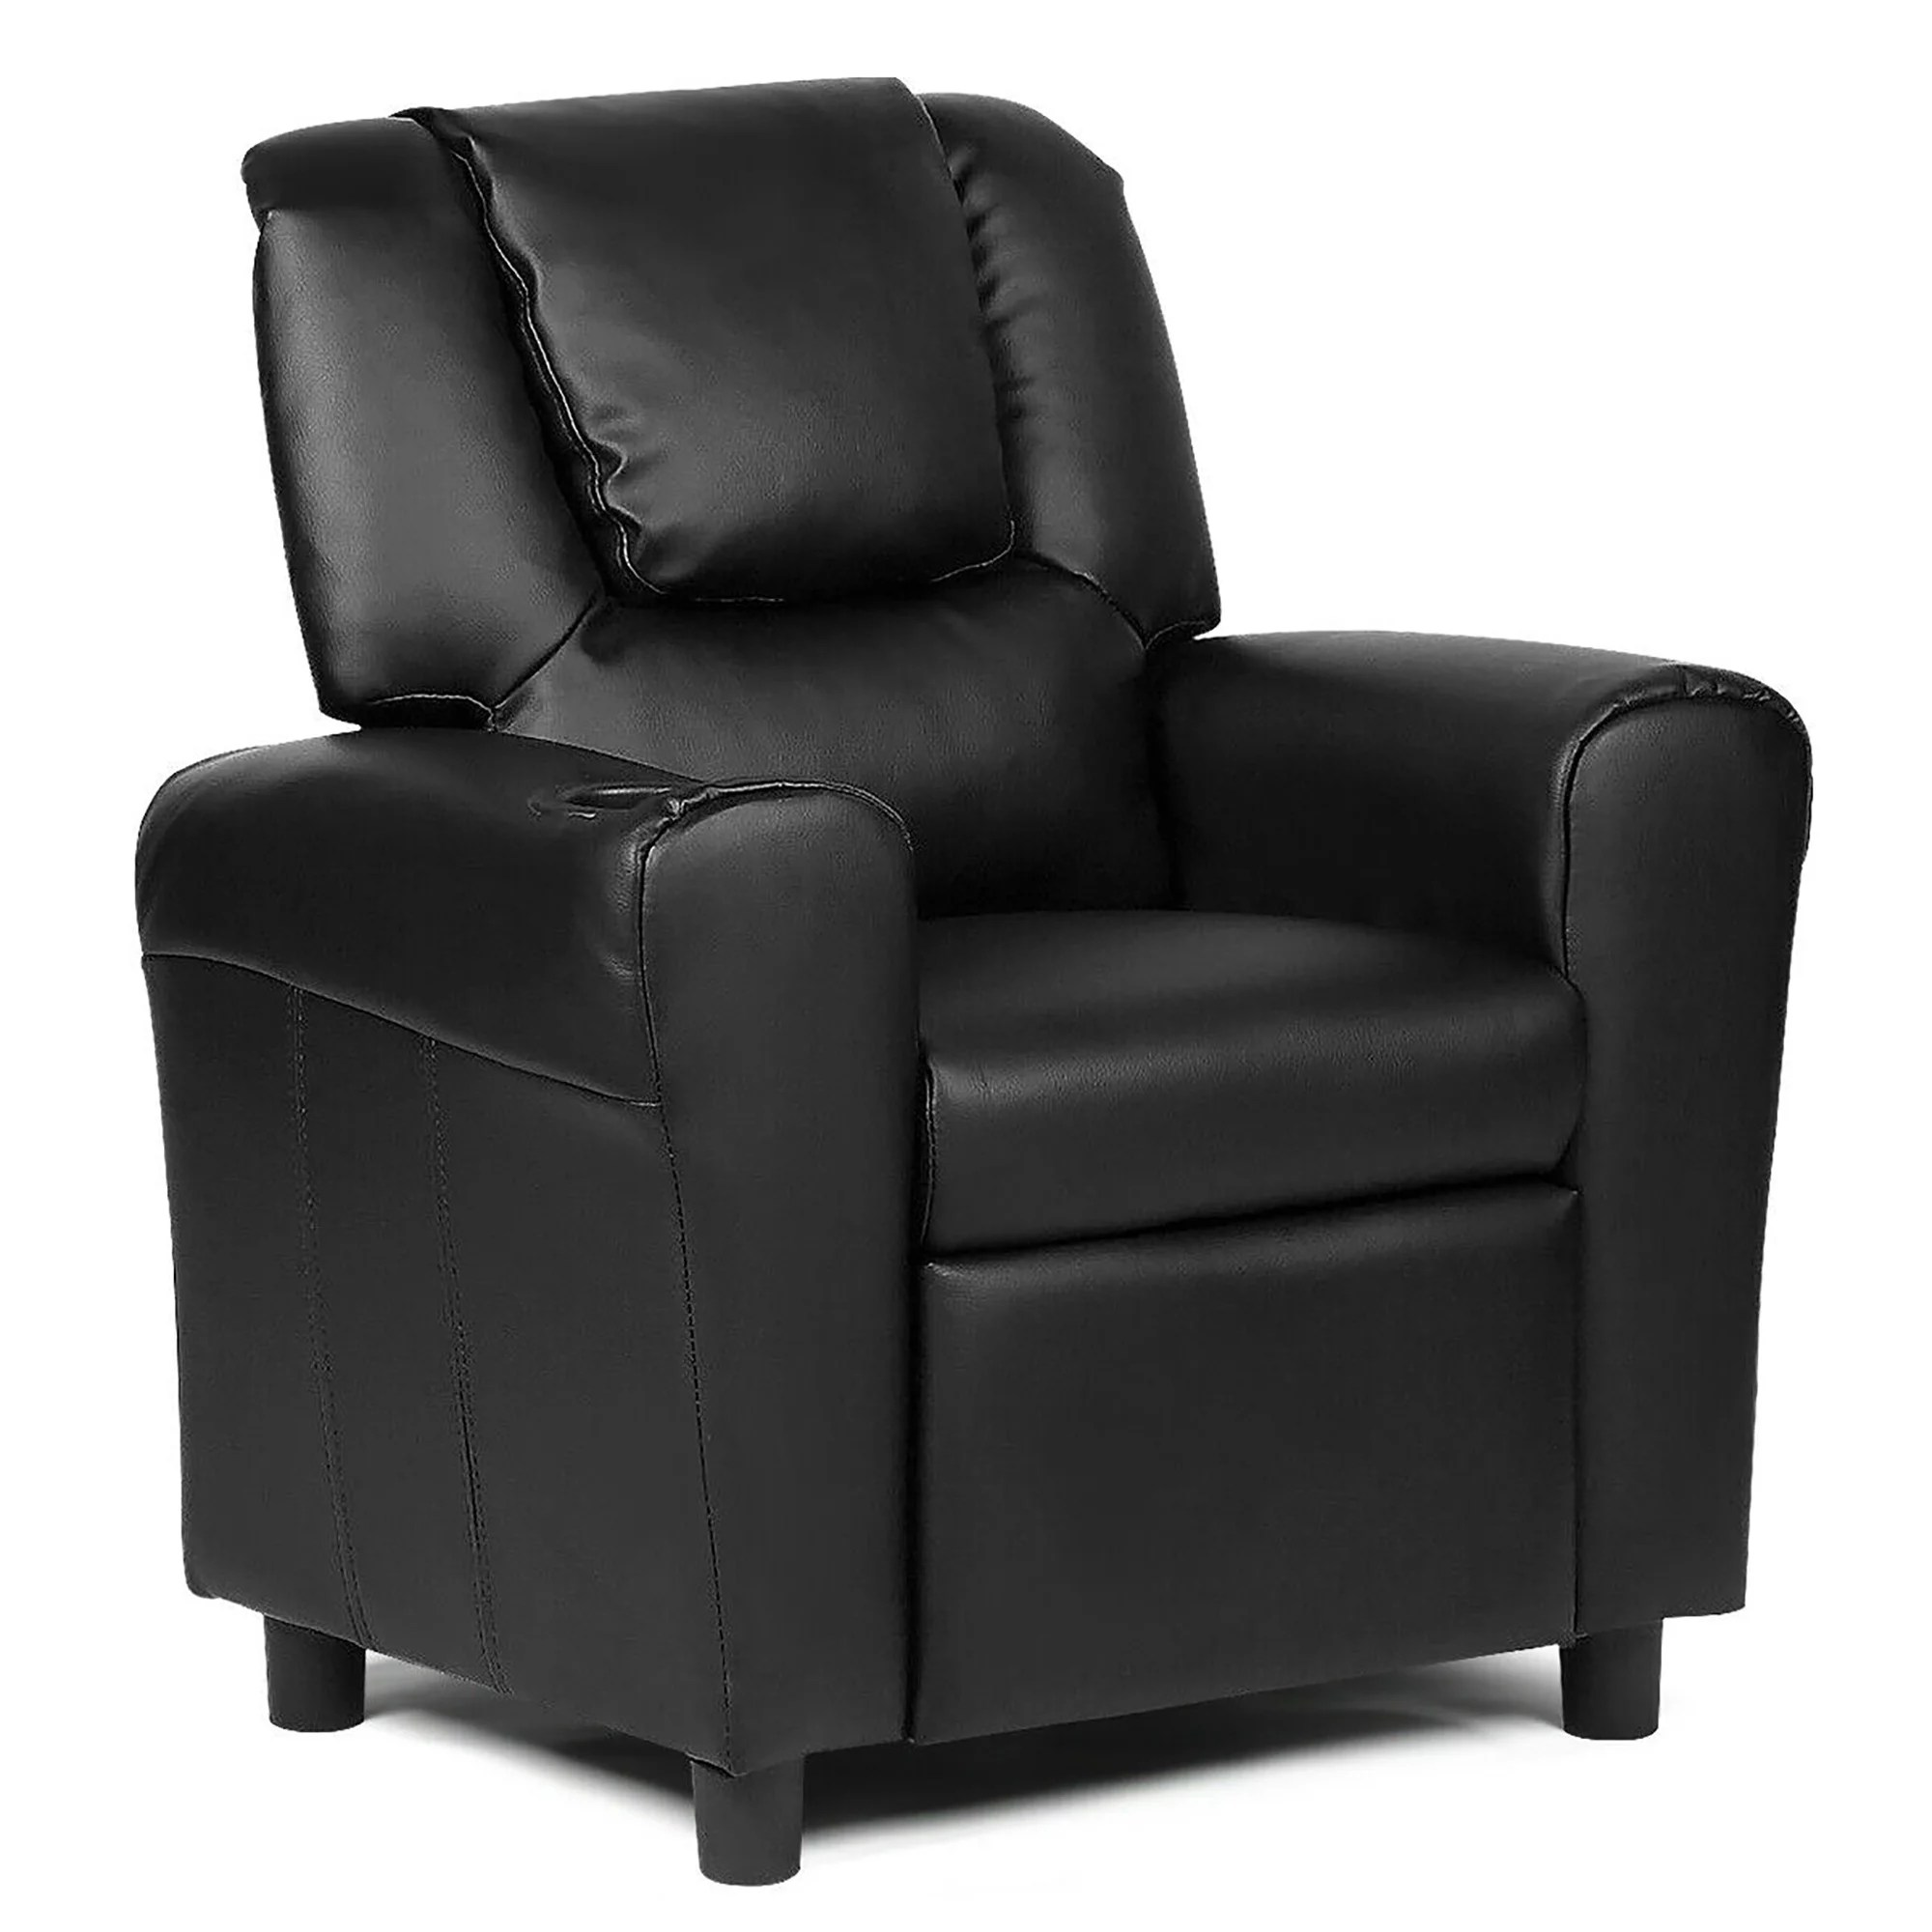 costway kids recliner armchair children s furniture sofa seat couch chair w cup holder black